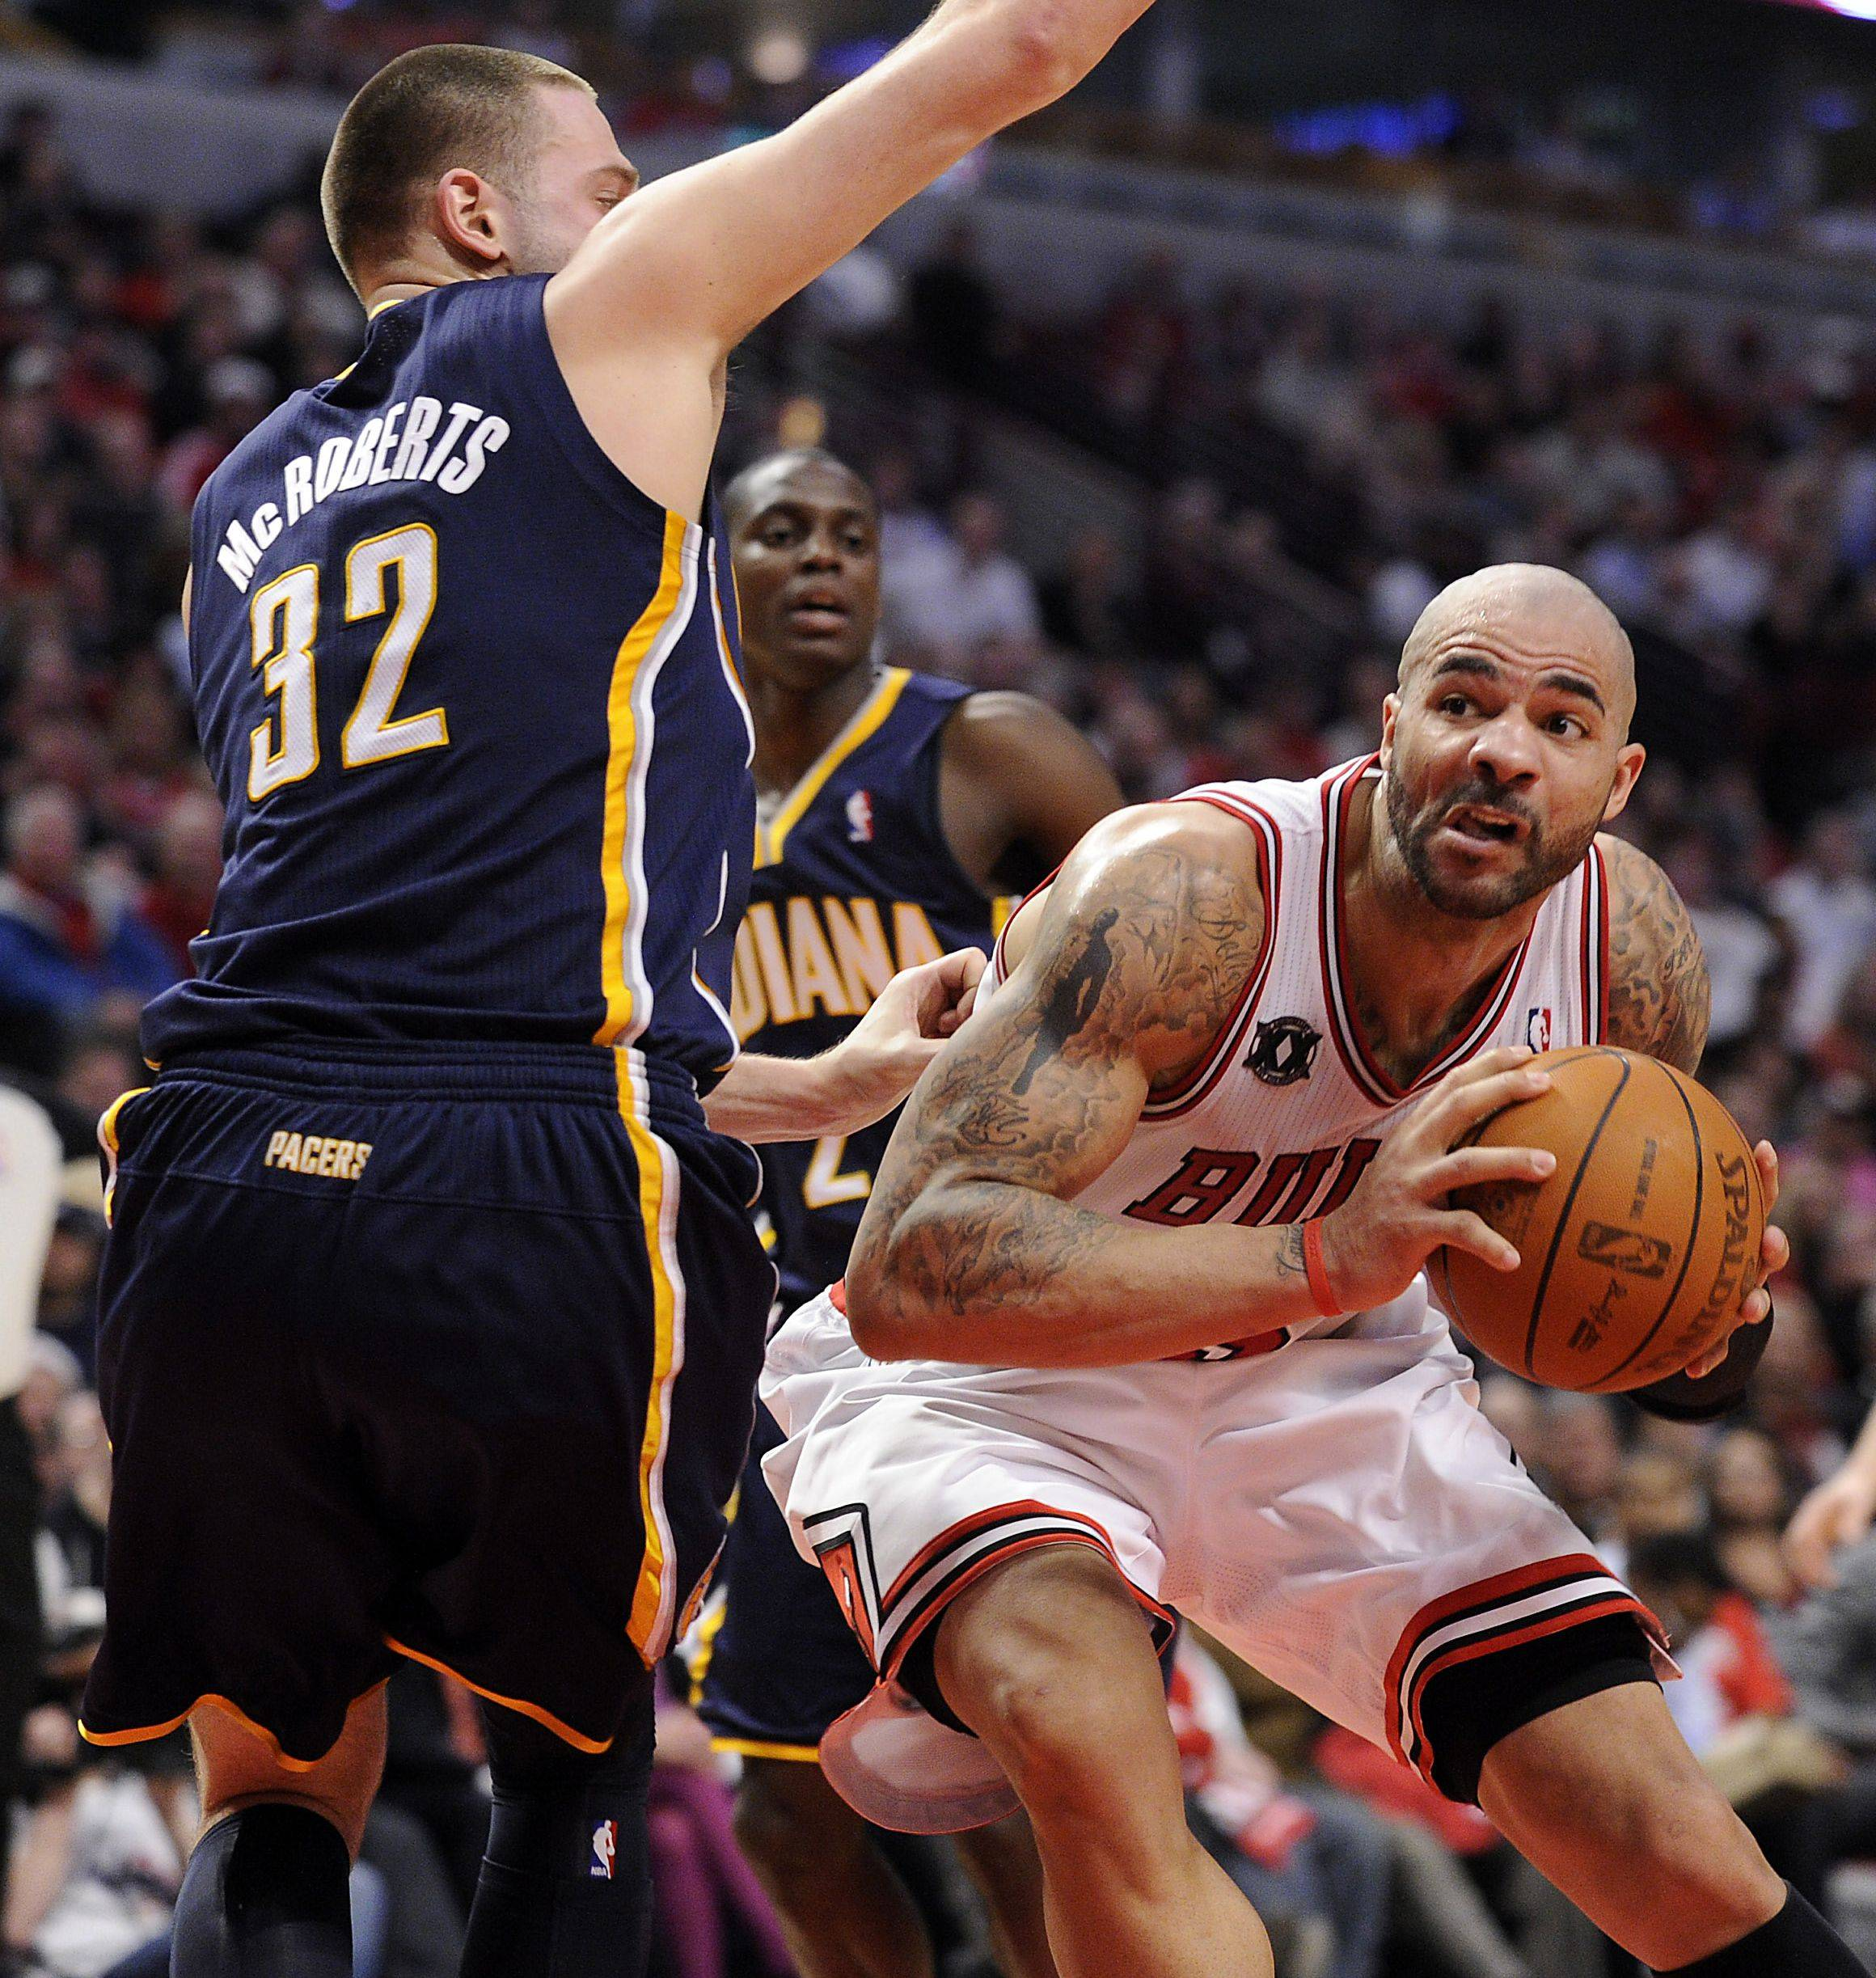 Carlos Boozer works his way around Josh McRoberts in the second quarter of Game 2 of their Eastern Conference playoff series Monday at the United Center.